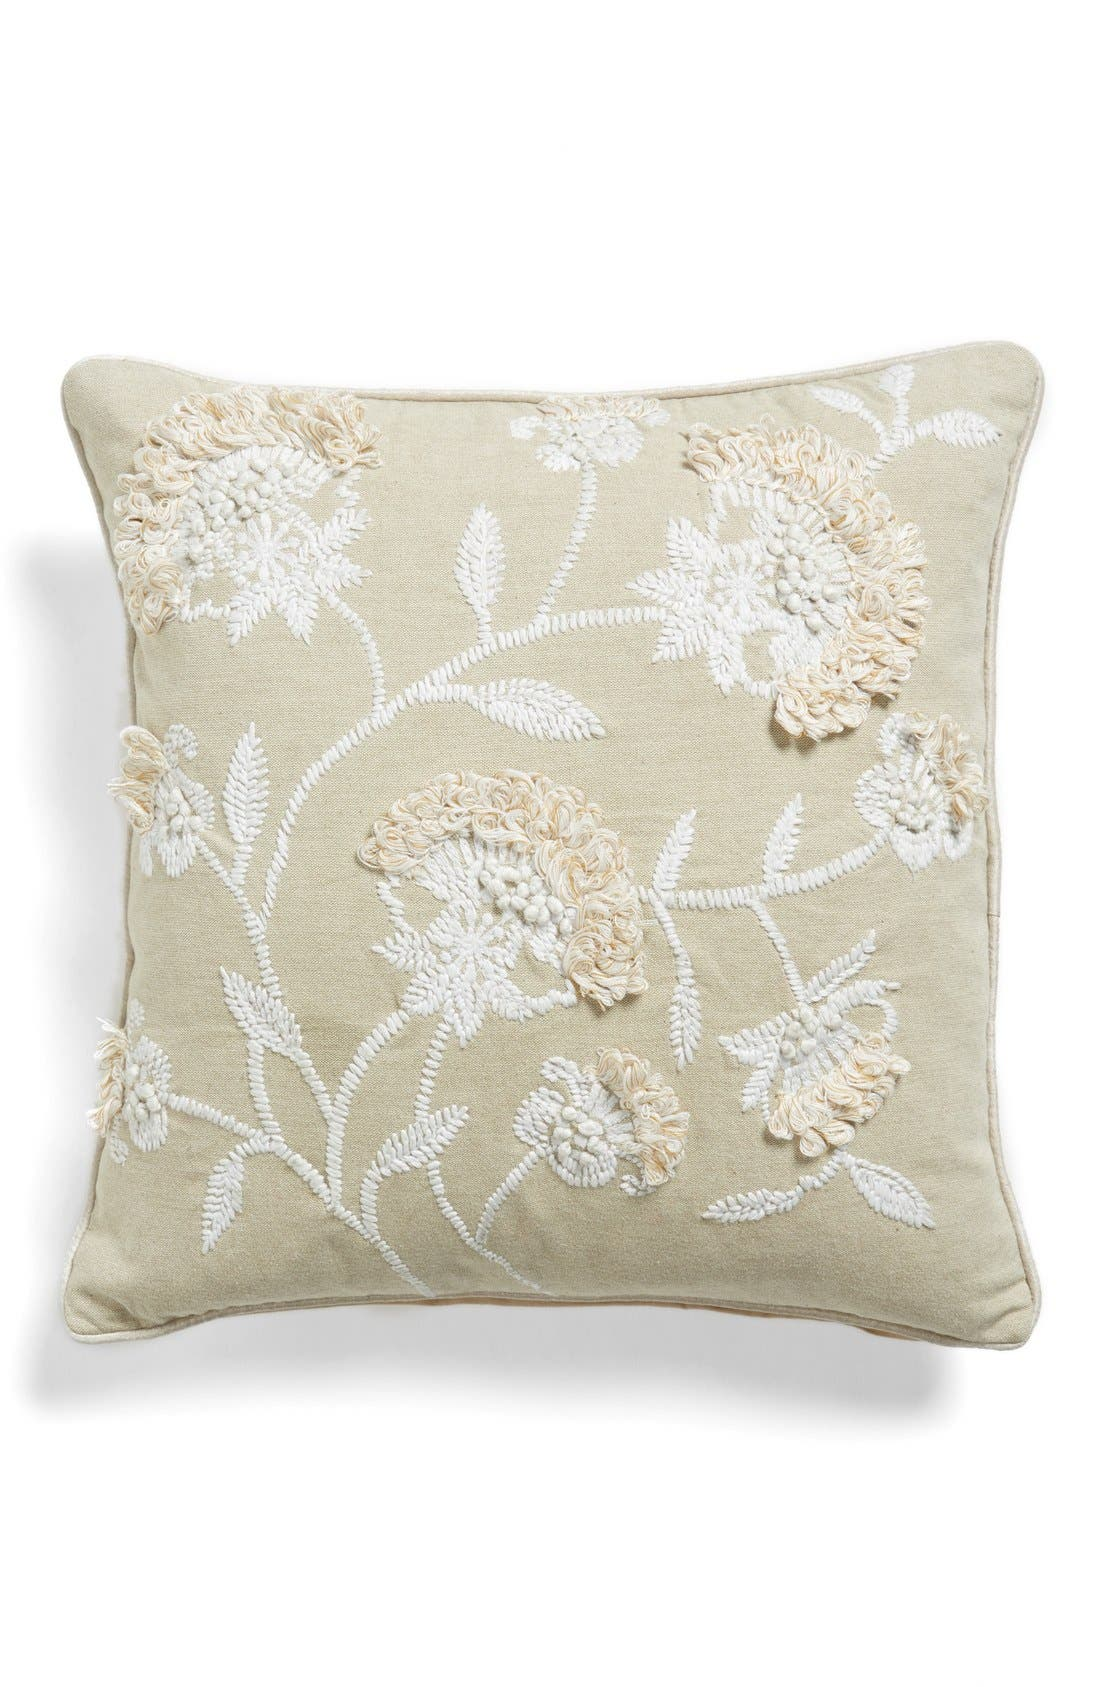 Alternate Image 1 Selected - Levtex Floral Stitch Accent Pillow